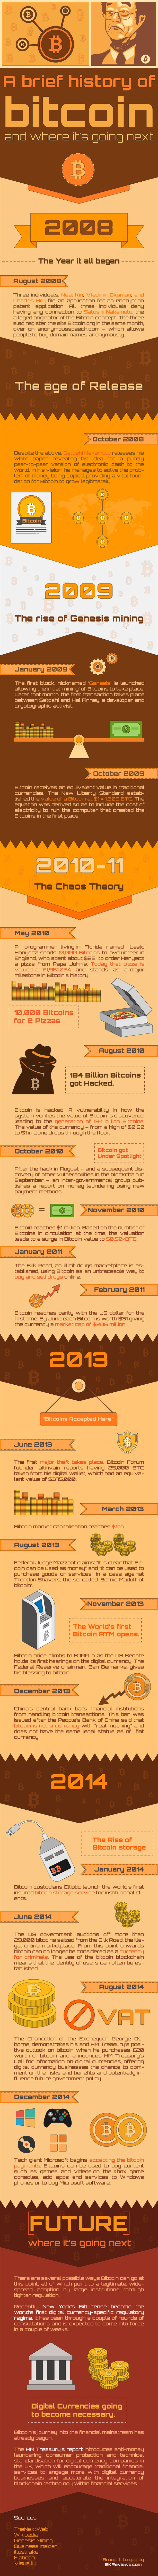 bitcoin-history-future-infographic